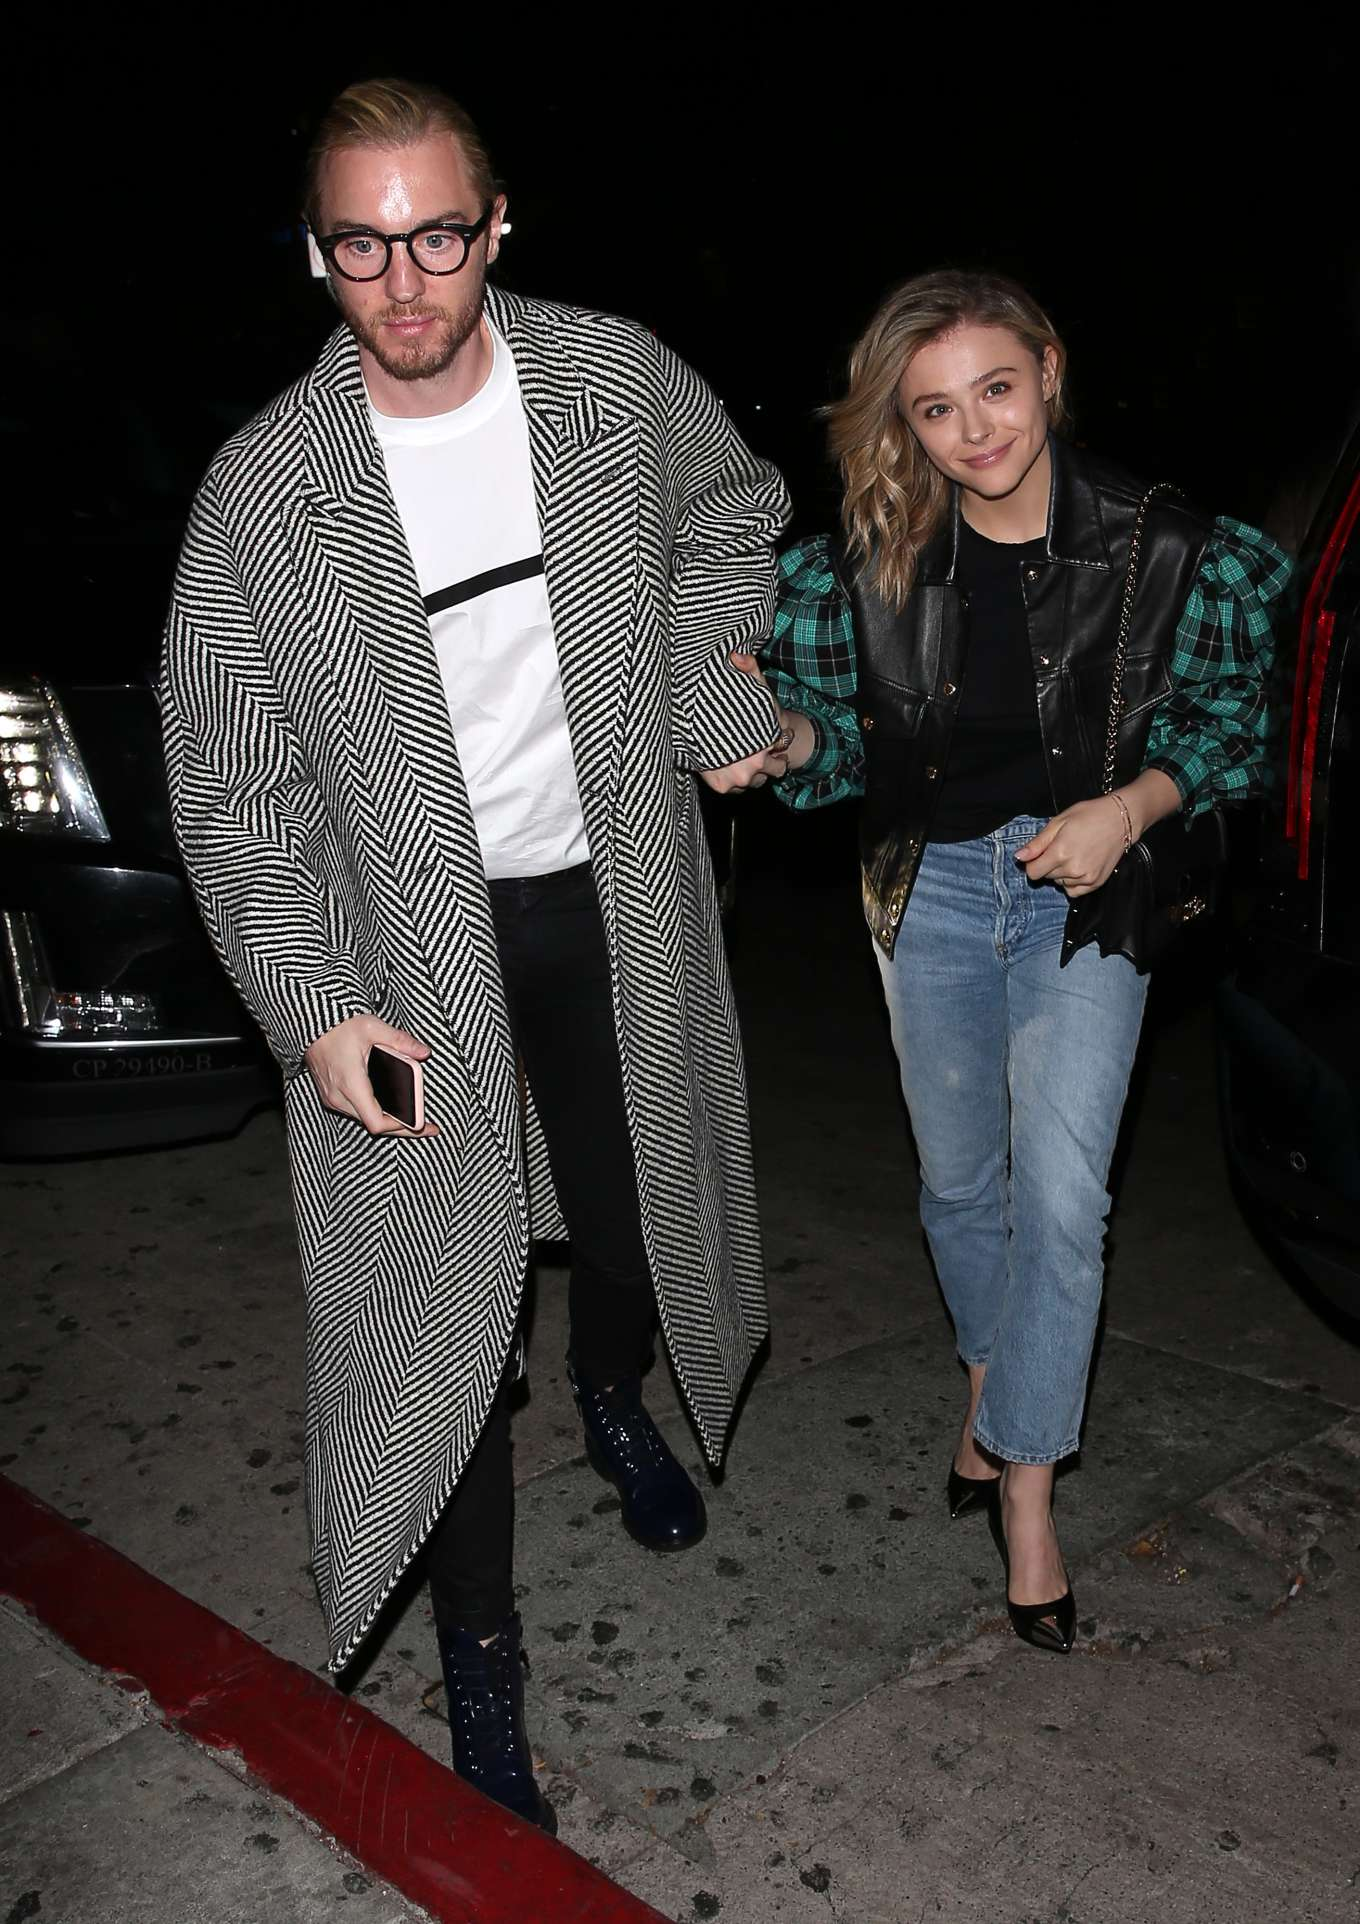 Chloe Grace Moretz - Night out with her brother Trevor Moretz in West Hollywood